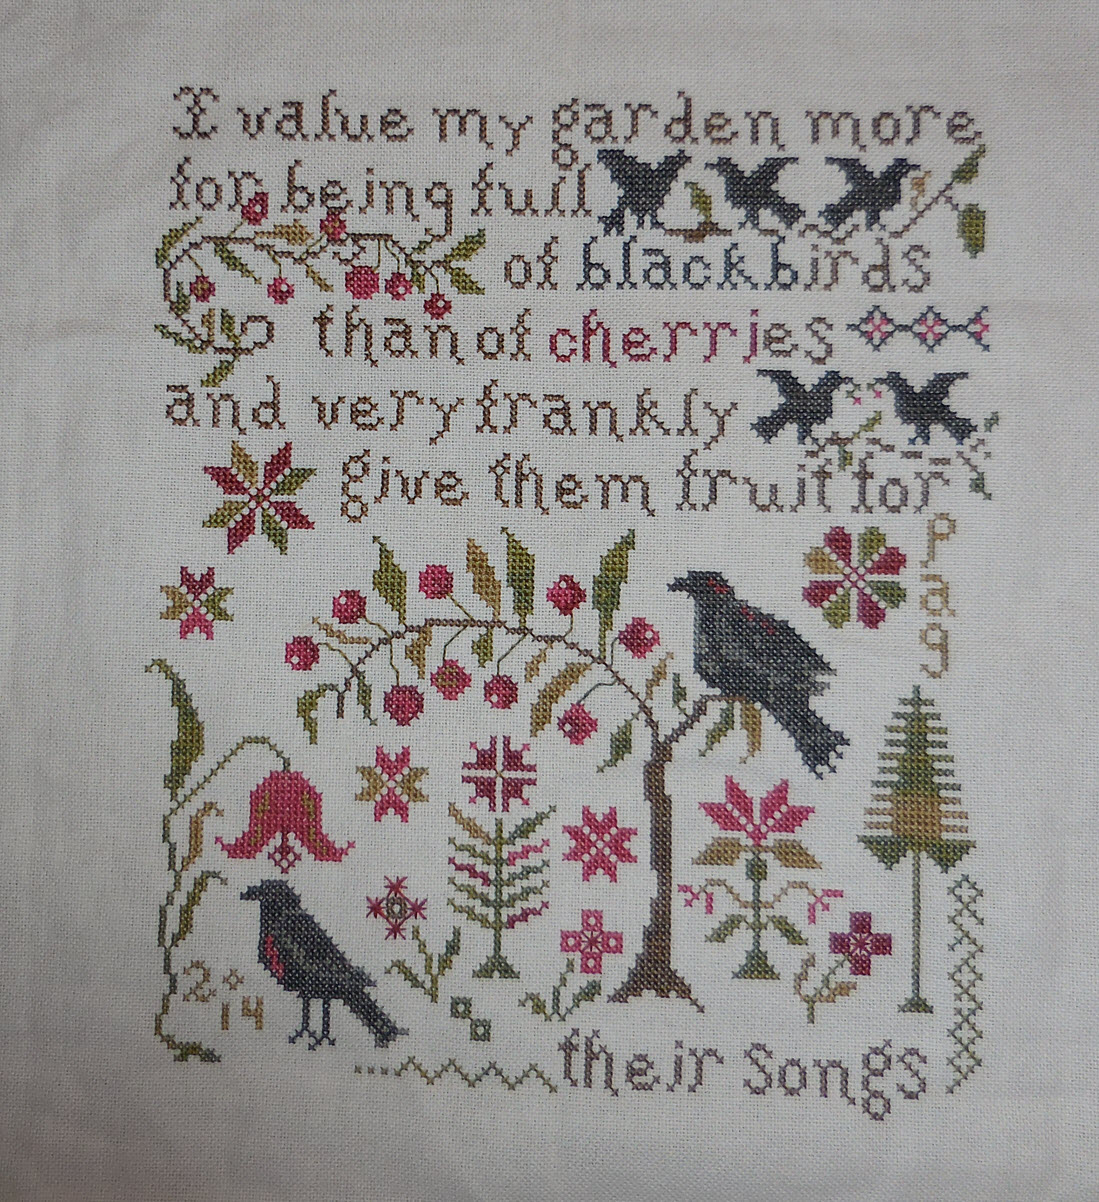 Pat 39 s cross stitch corner a place to share a craft i love for Blackbird designs english garden